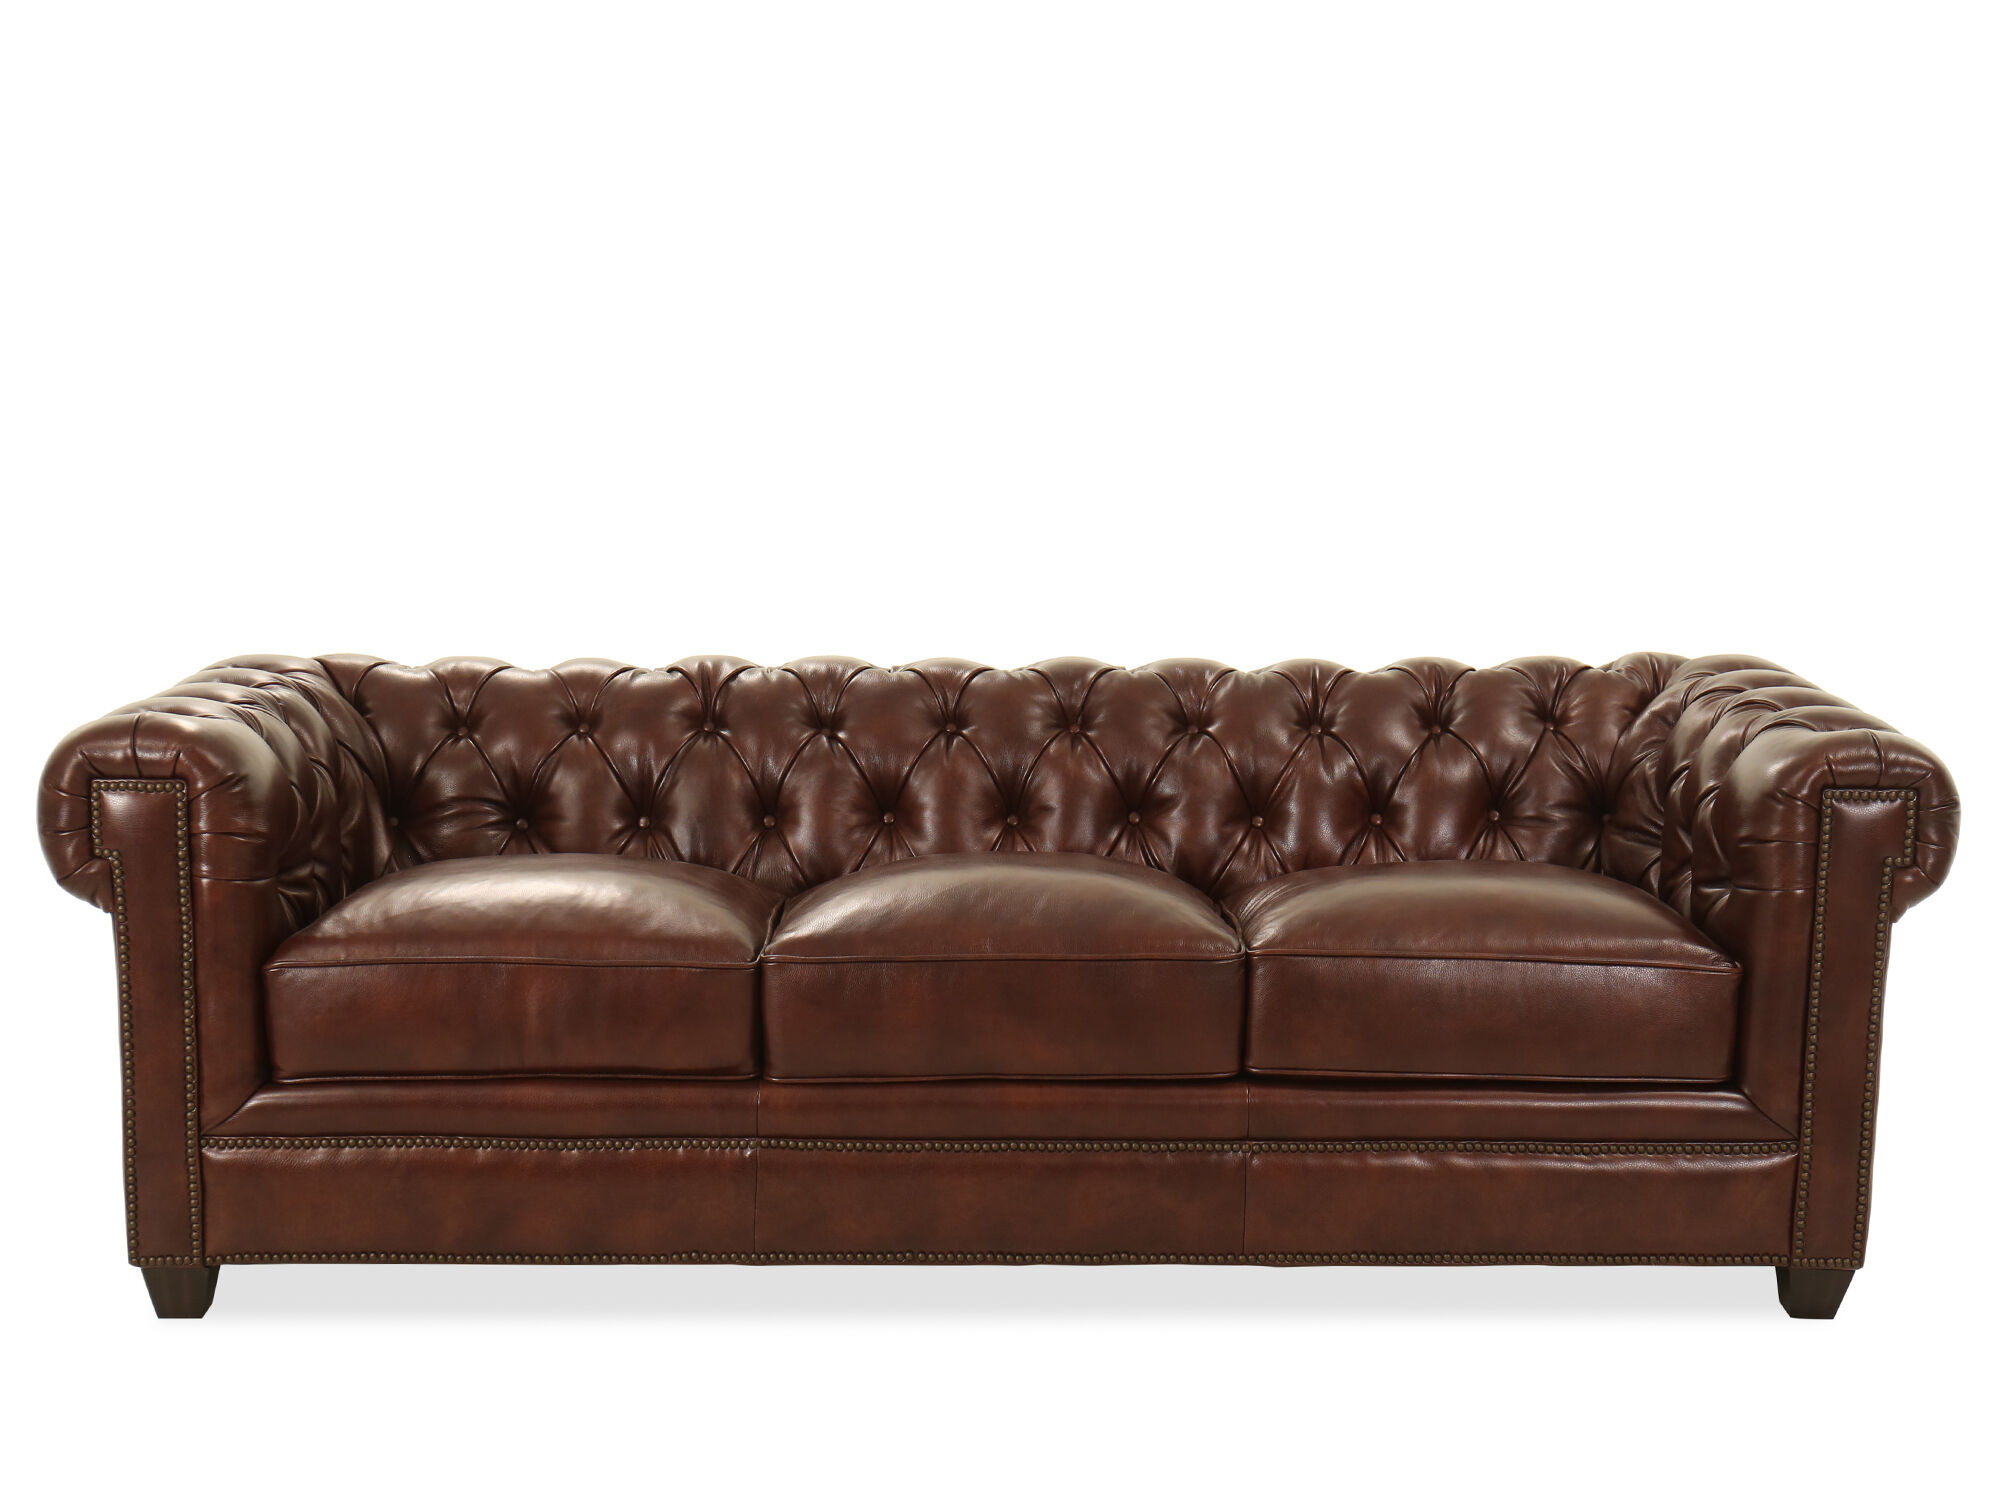 94 Tufted Leather Chesterfield Sofa In Milano Fudge